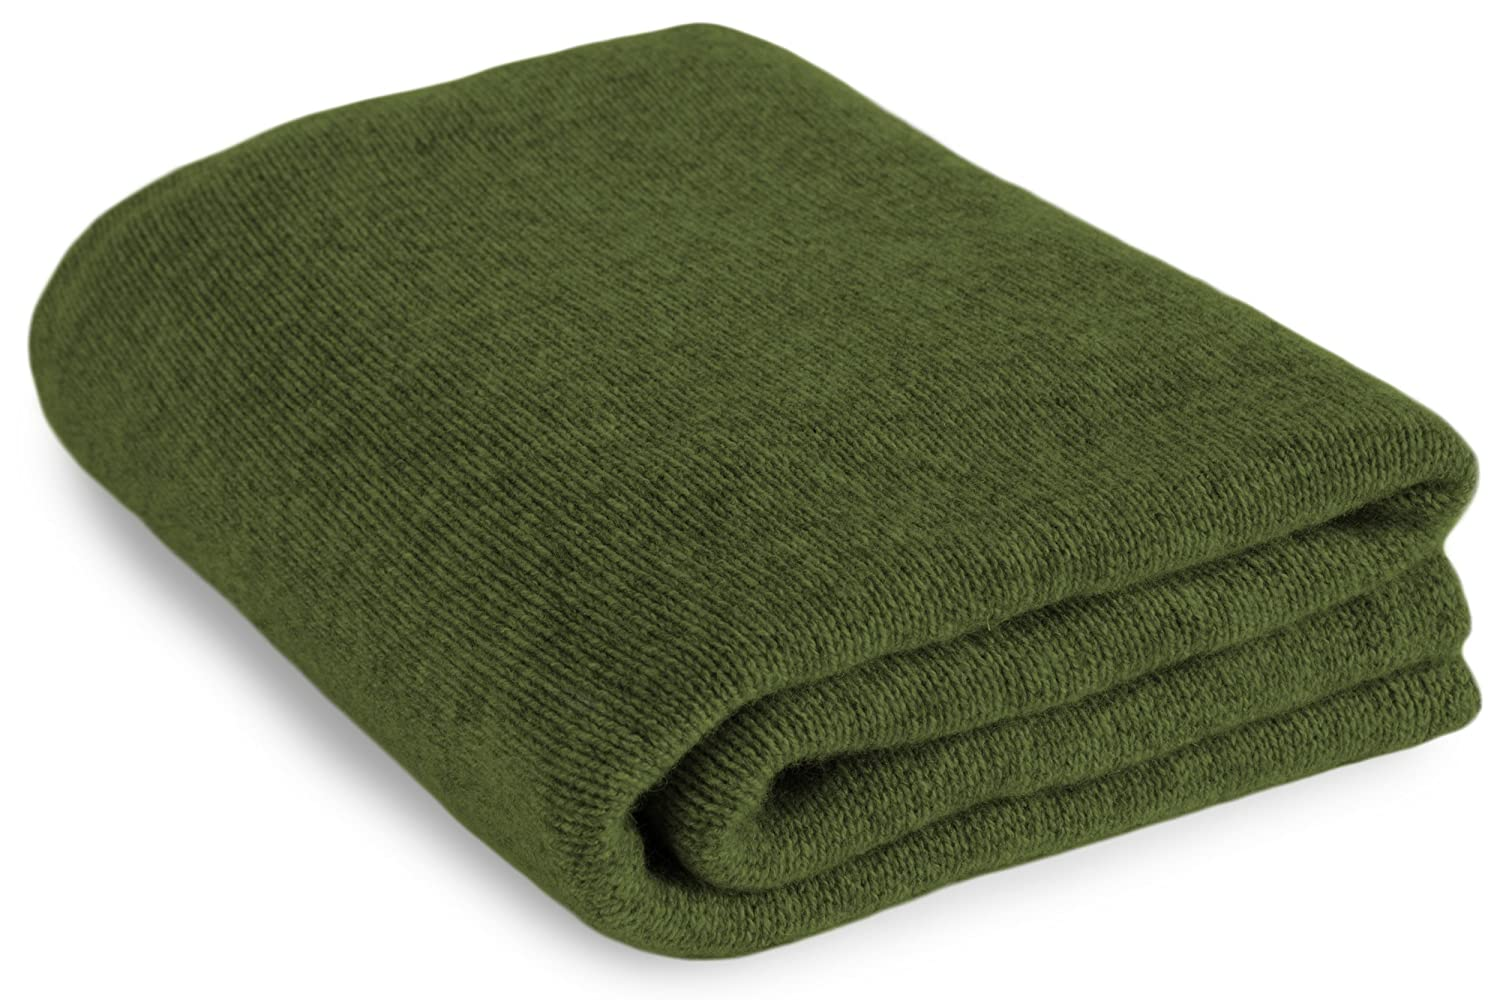 Large 100 %カシミアBed Blanket Throw – Irishグリーン – Made to Order、2サイズ可能 – Made in Scotland Extra Large (160cm by 208cm) グリーン LC093_irishgreen B01N9AKAUU  Extra Large (160cm by 208cm)